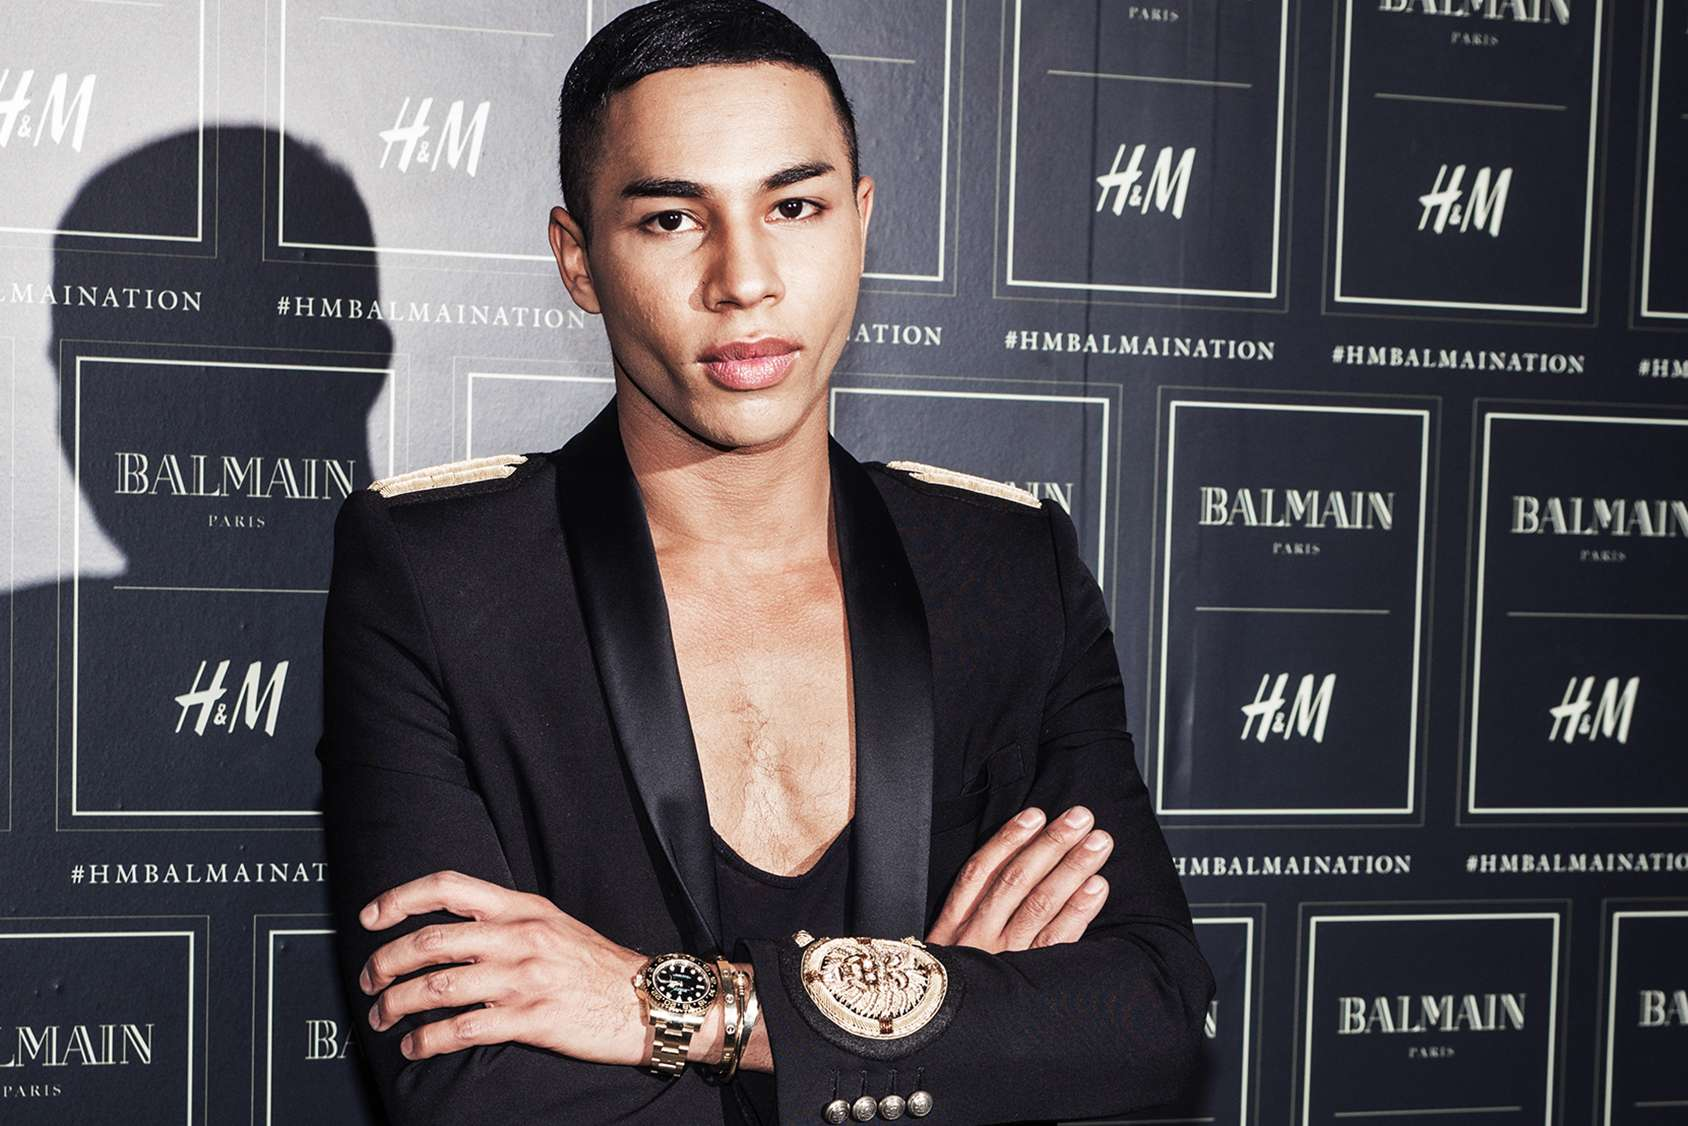 My Interview with Olivier Rousteing creative director of Balmain